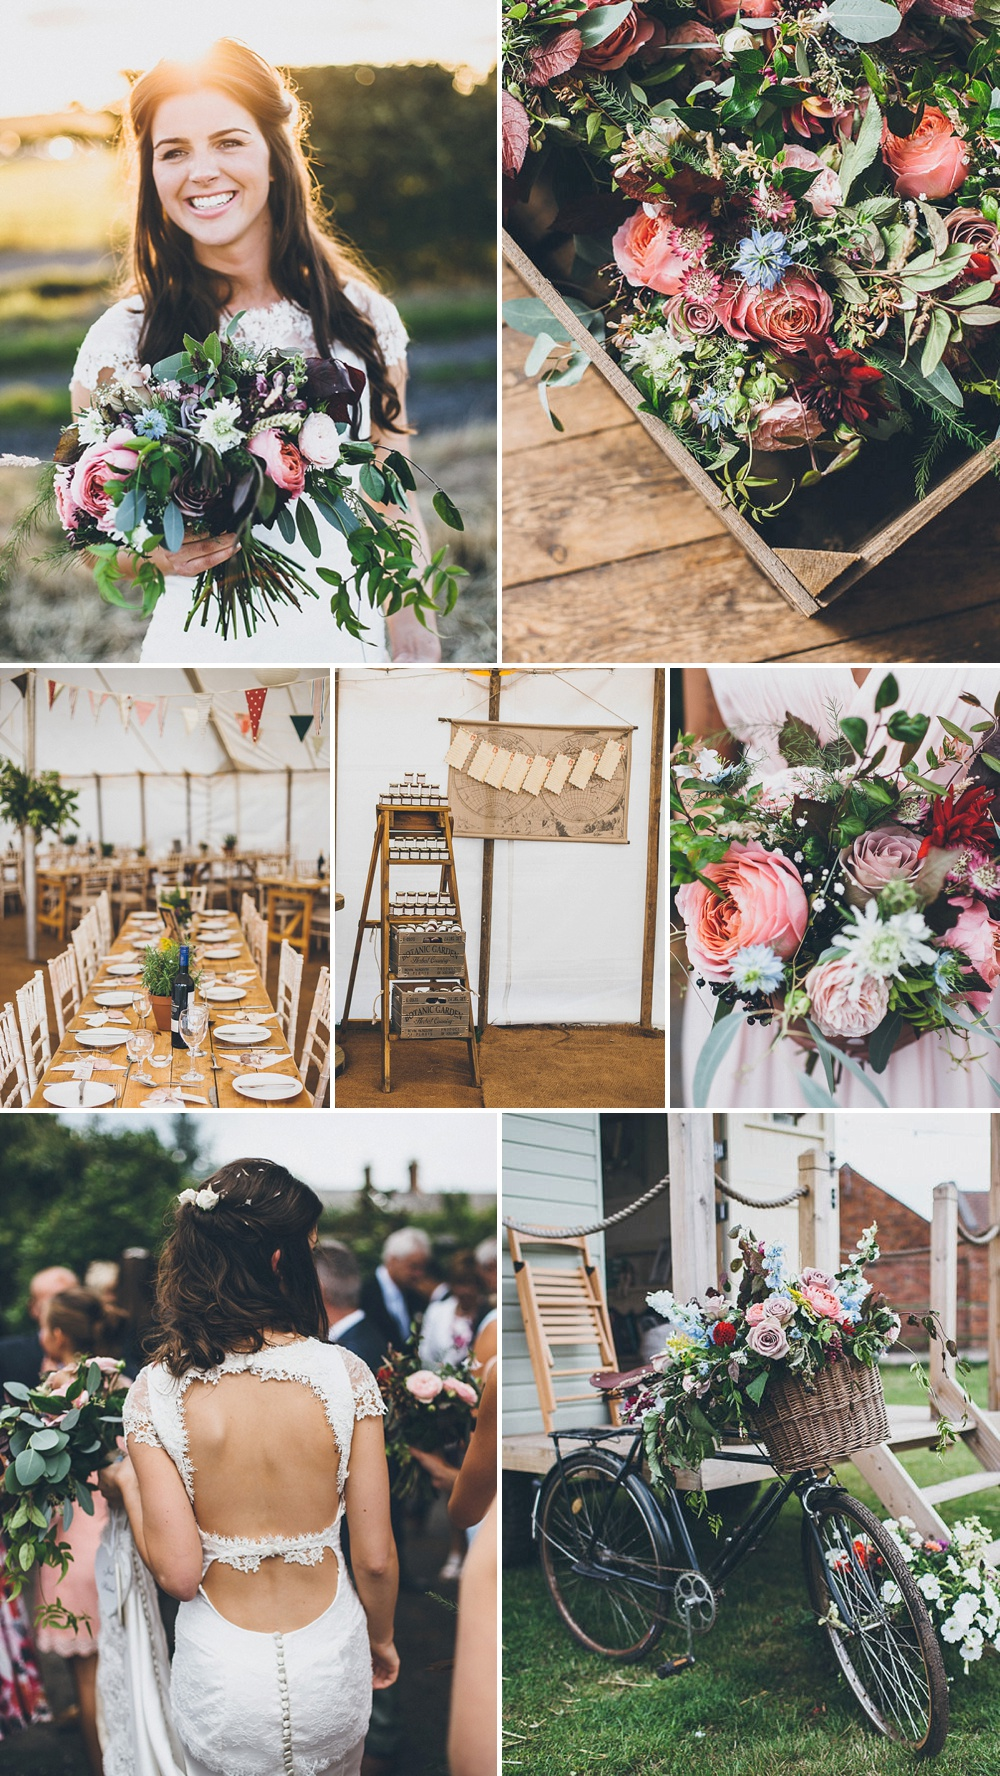 At Home Wedding With Stunning Flowers